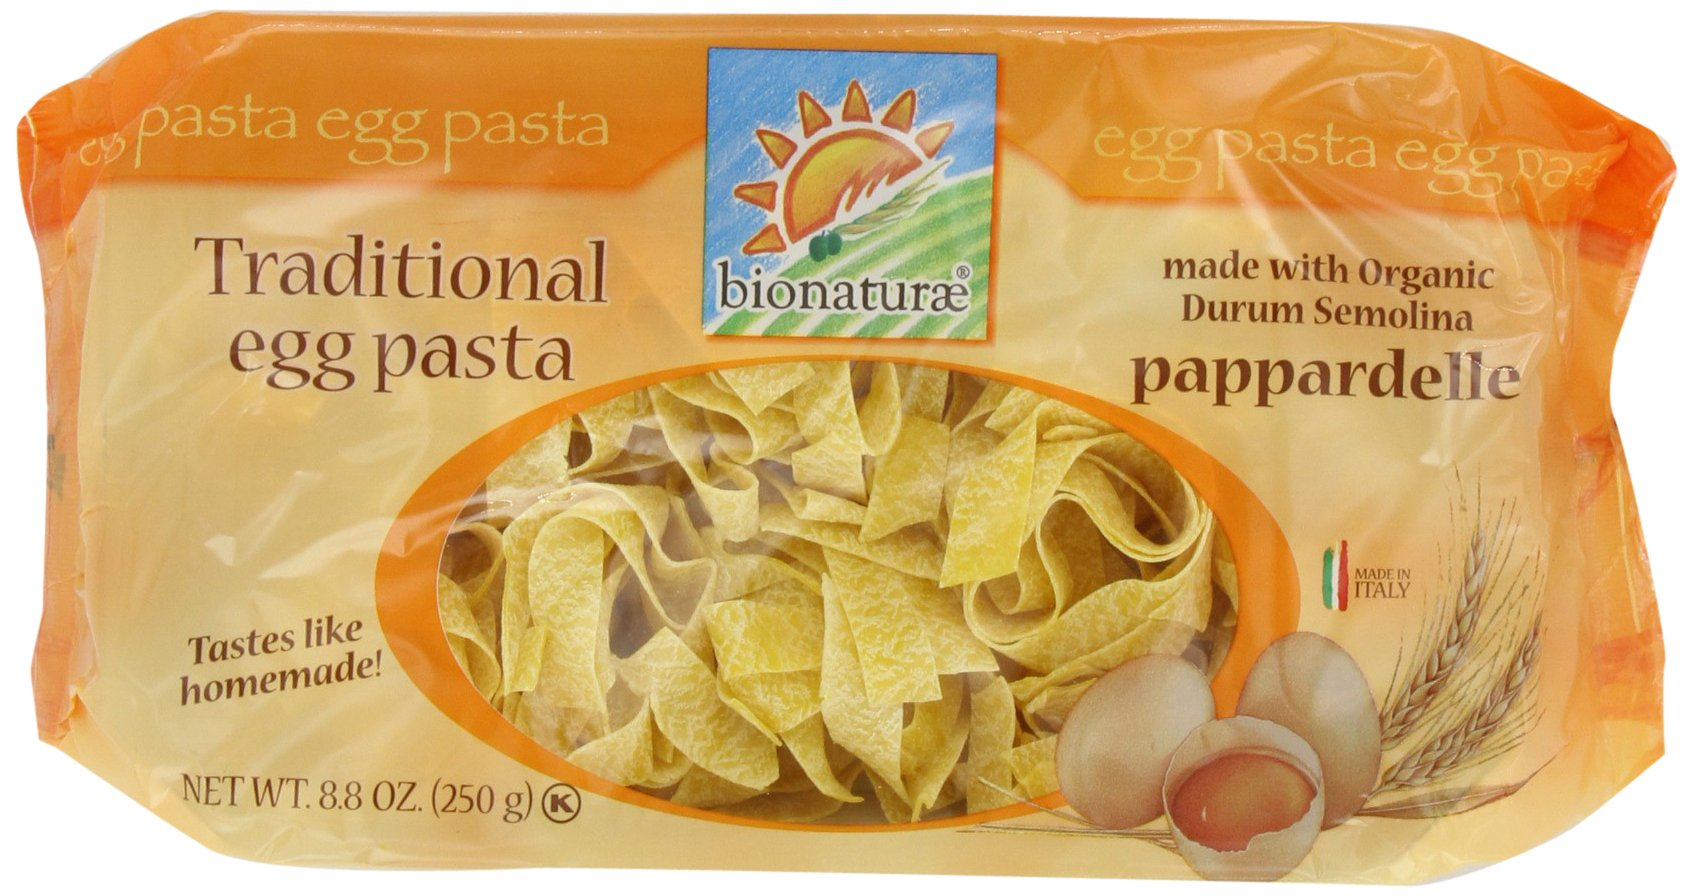 bionaturae With Organic Durum Semolina Pappardelle Egg Pasta, 8.8 Ounce Bags (Pack of 6) by Bionaturae